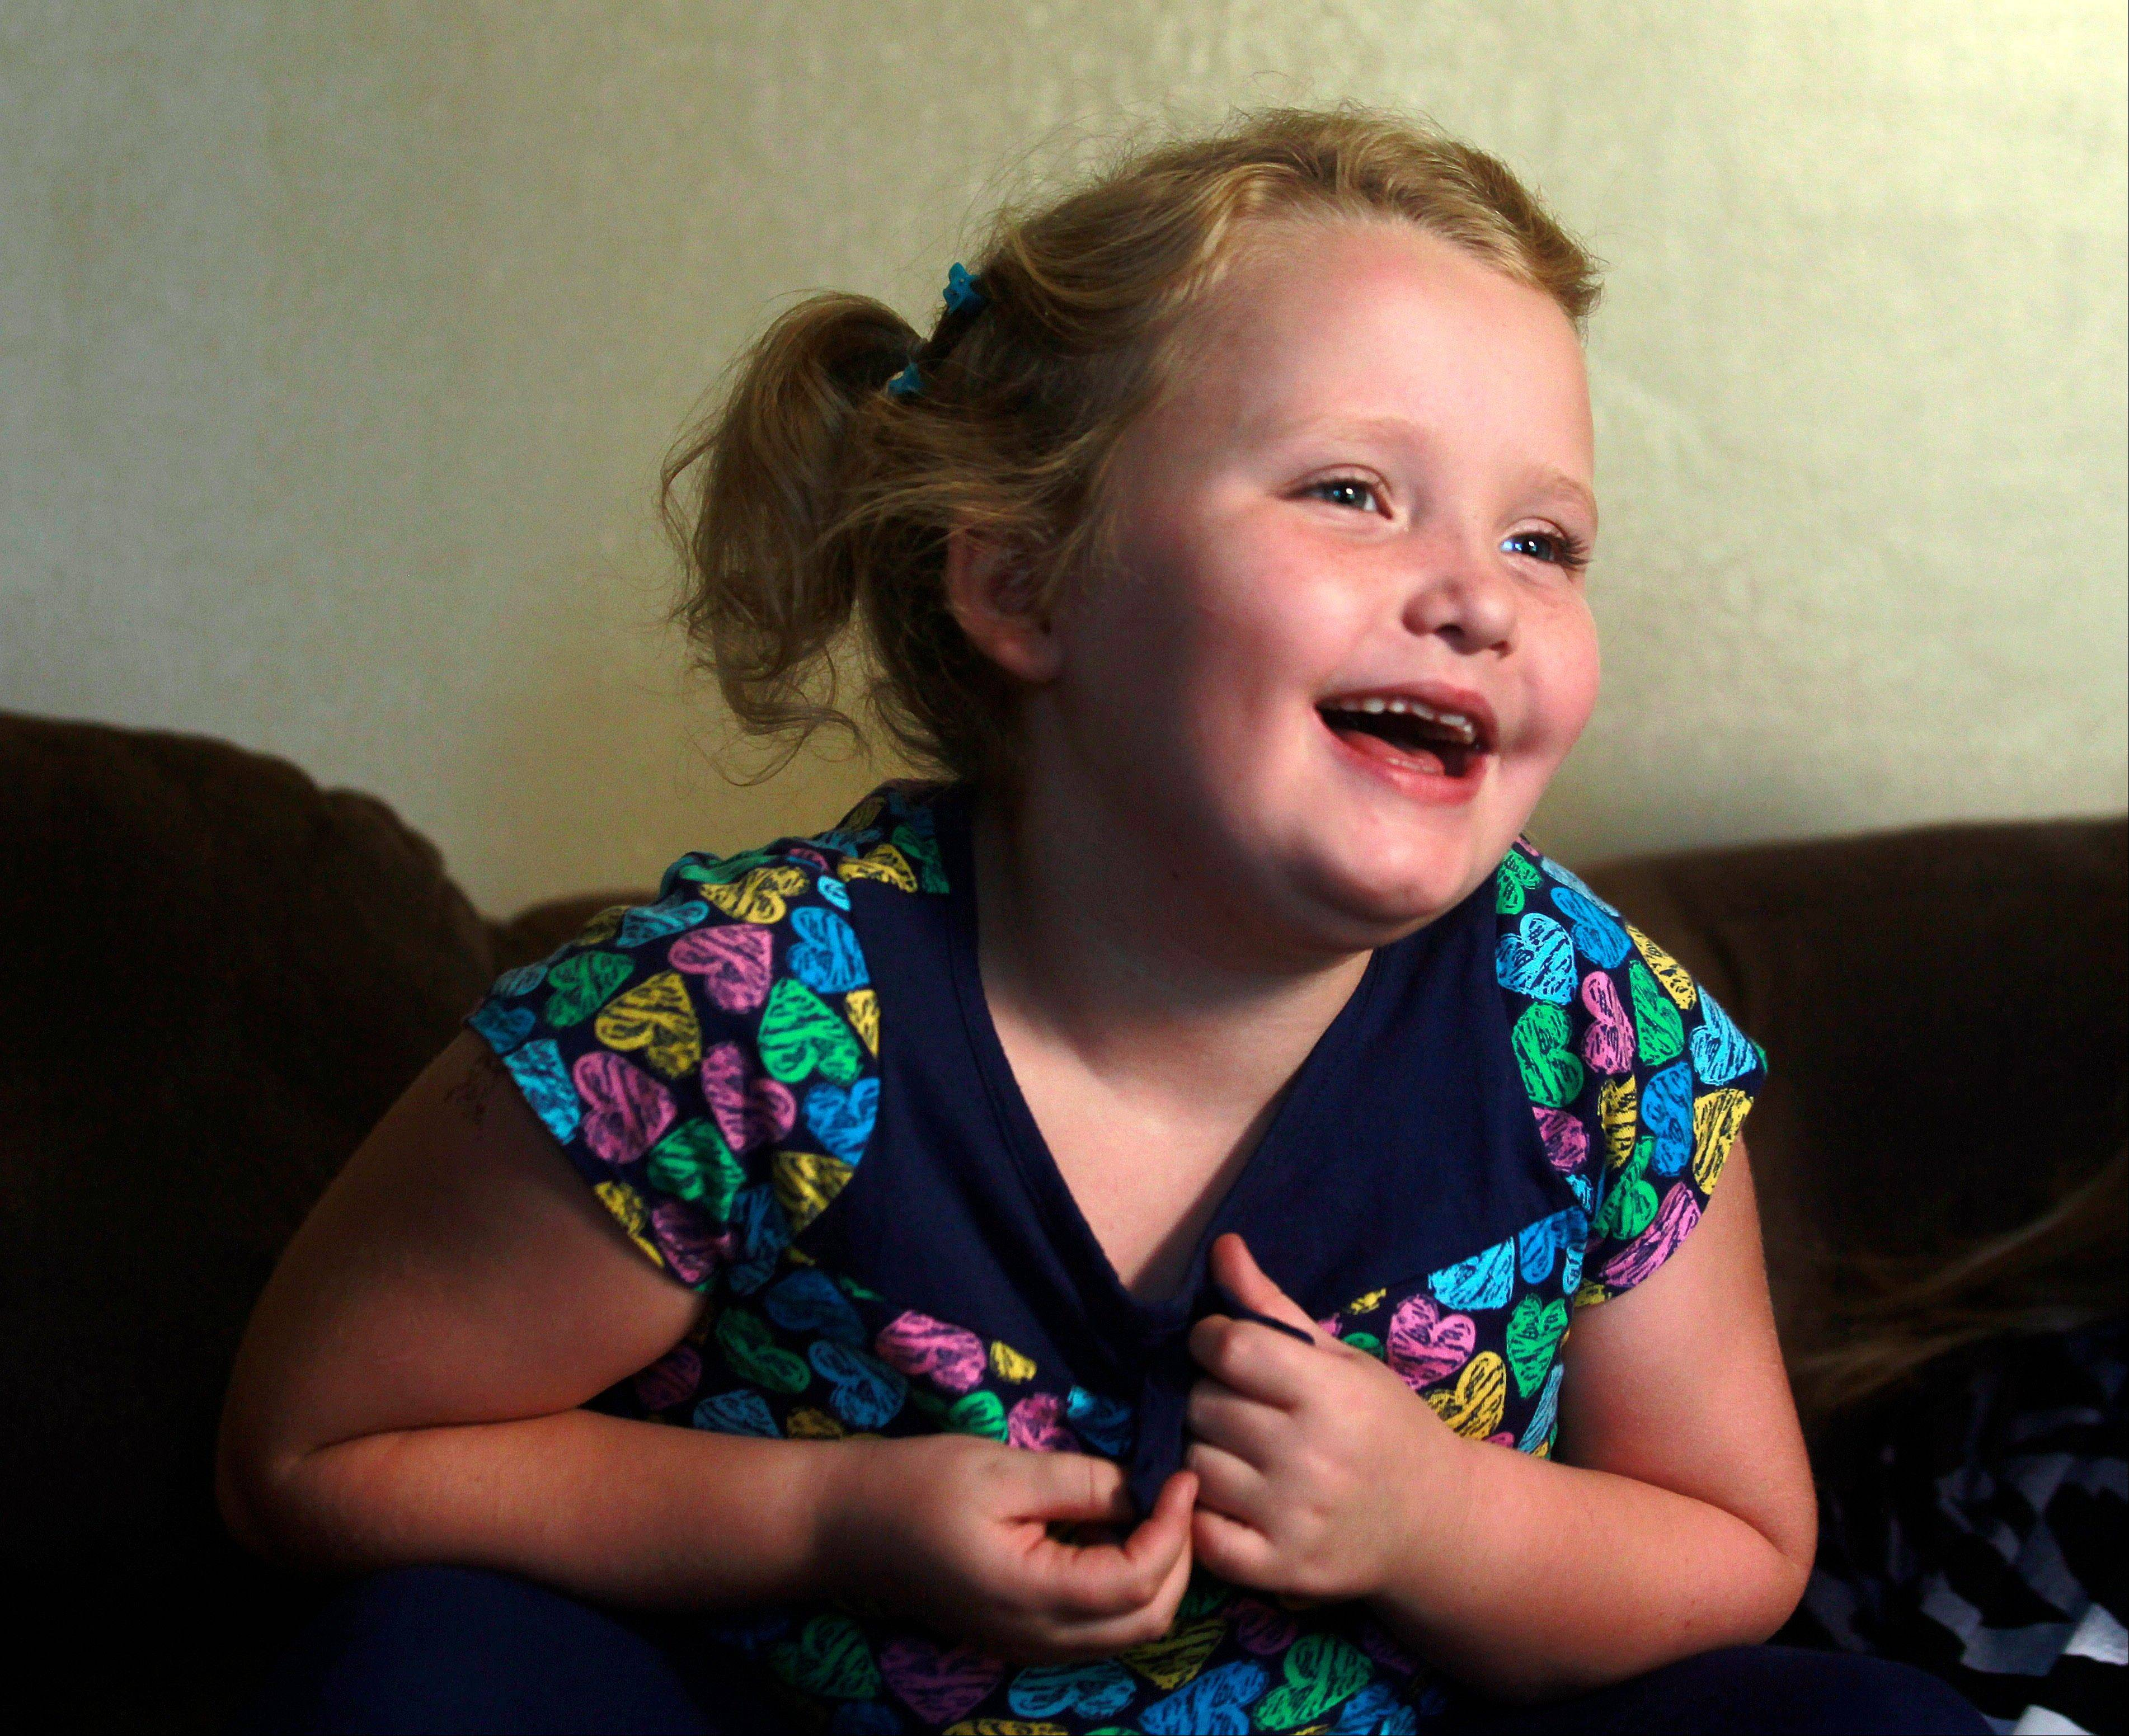 The TLC network said Wednesday that it has ordered Halloween, Thanksgiving and Christmas specials focusing on its 7-year-old breakout star, Alana �Honey Boo Boo� Thompson.